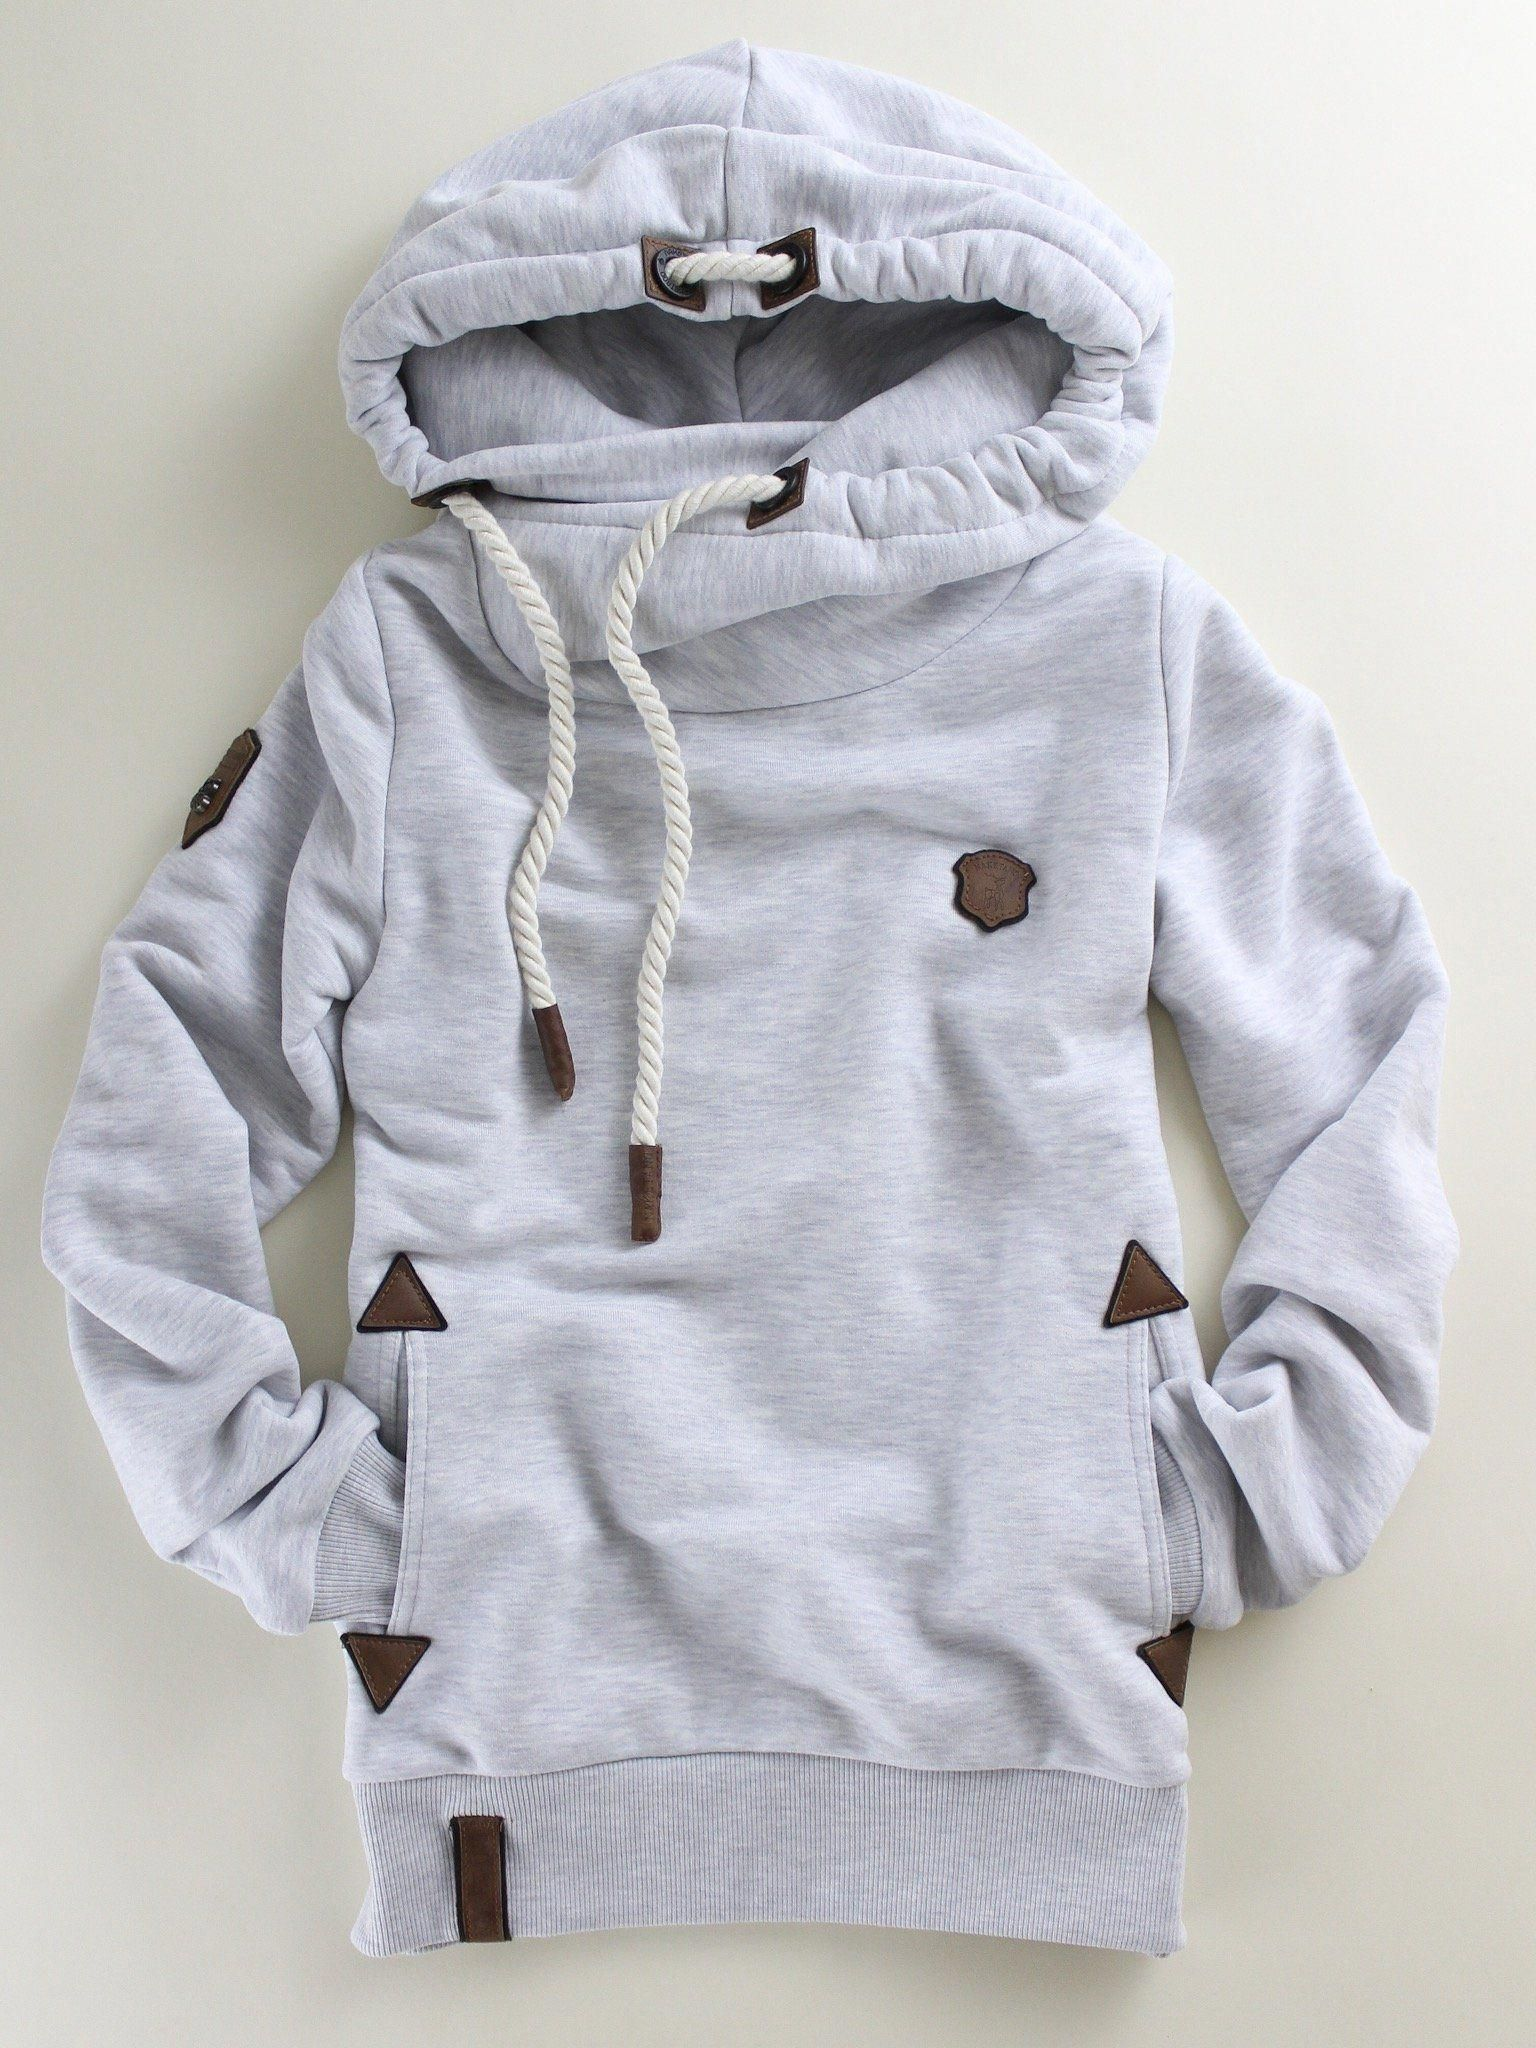 Step up your hoodie game! The Naketano Darth X Pullover